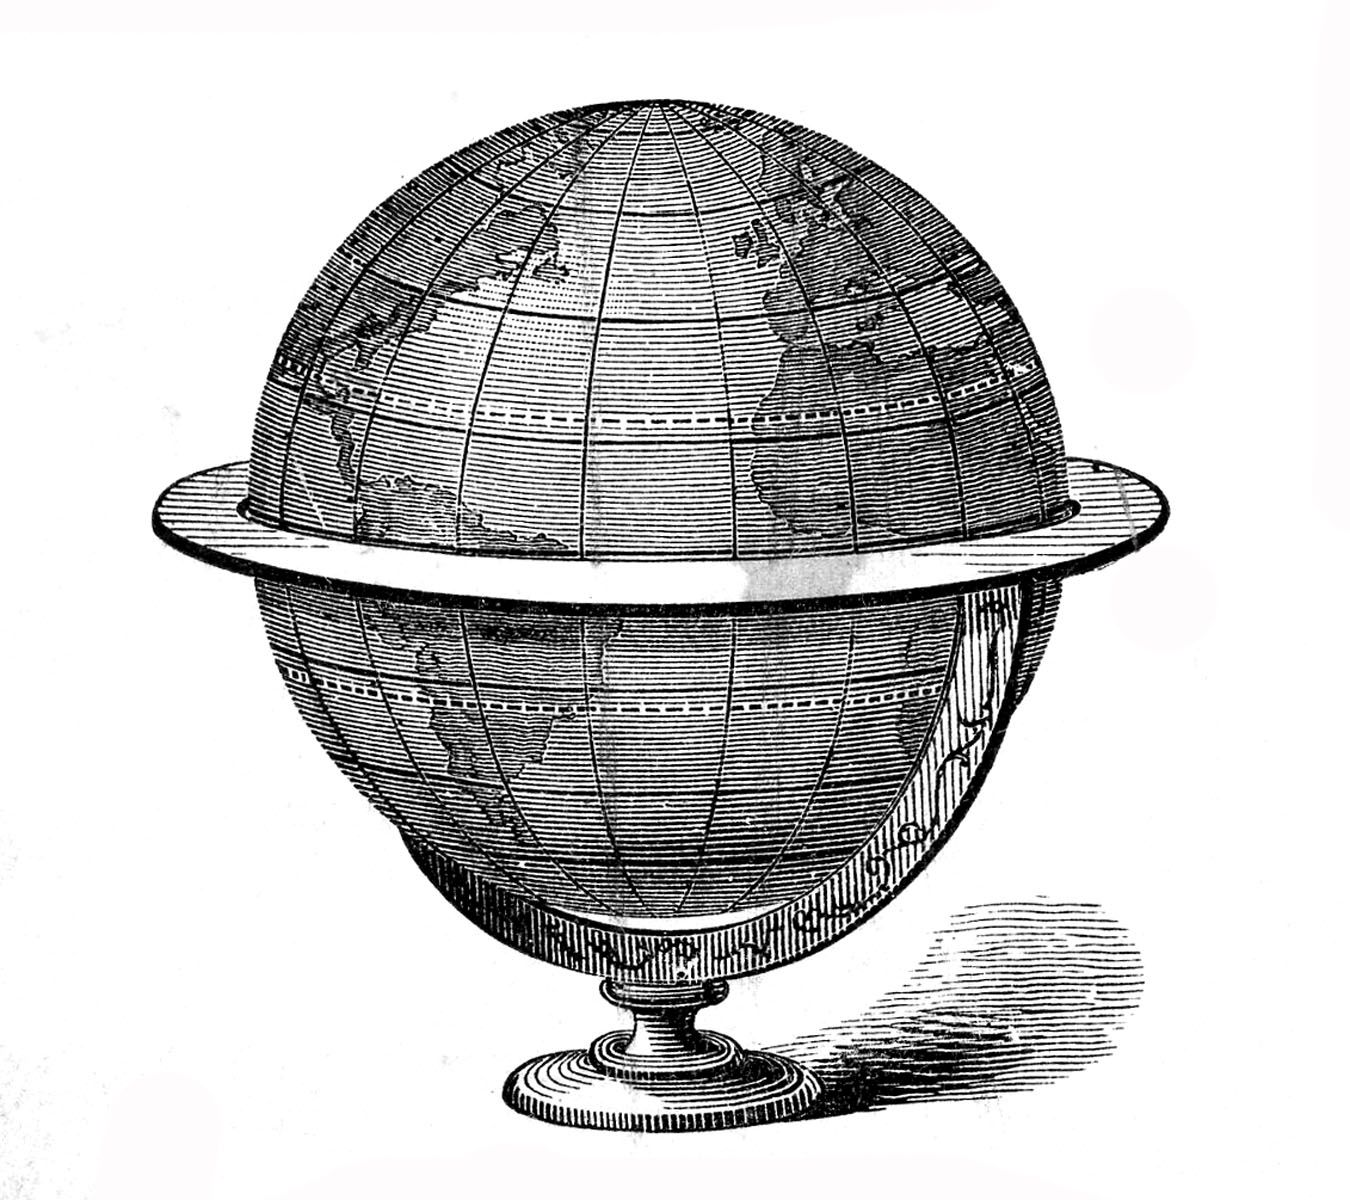 Vintage globe map black and white clipart clip royalty free library Thursday is Request Day - Map of Africa, Steampunk Globe ... clip royalty free library